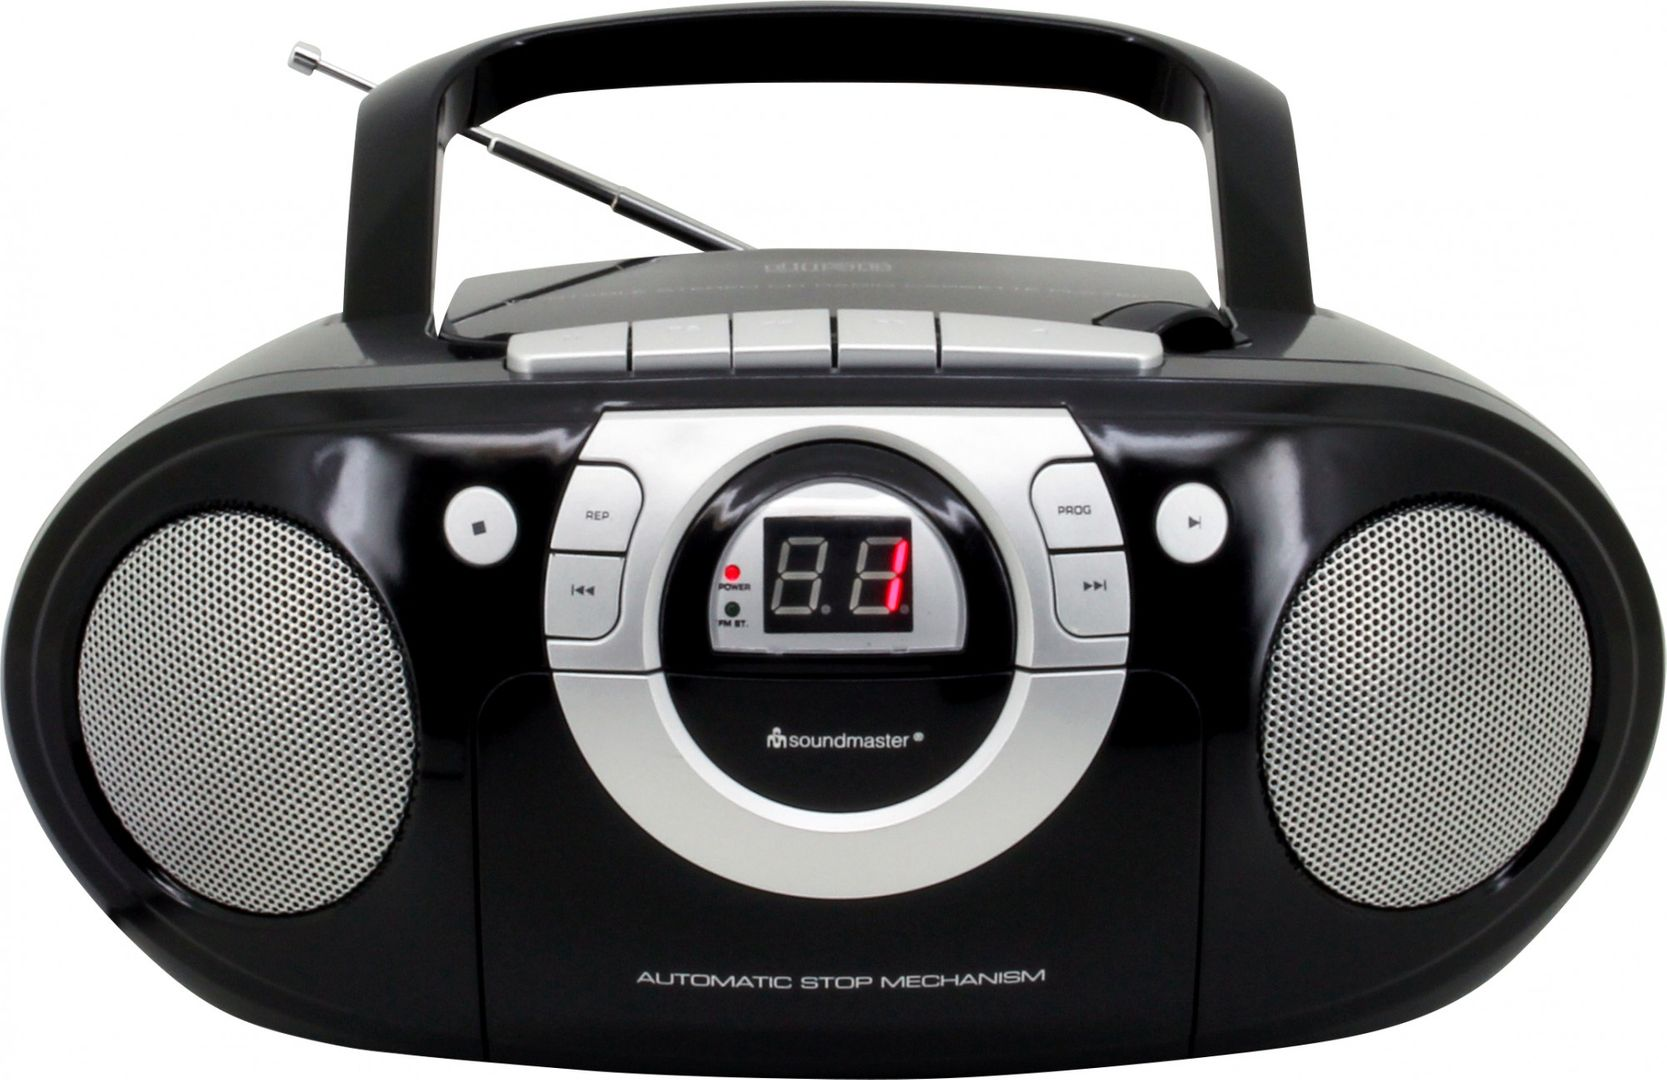 soundmaster scd5100sw radio kassettenspieler mit cd. Black Bedroom Furniture Sets. Home Design Ideas